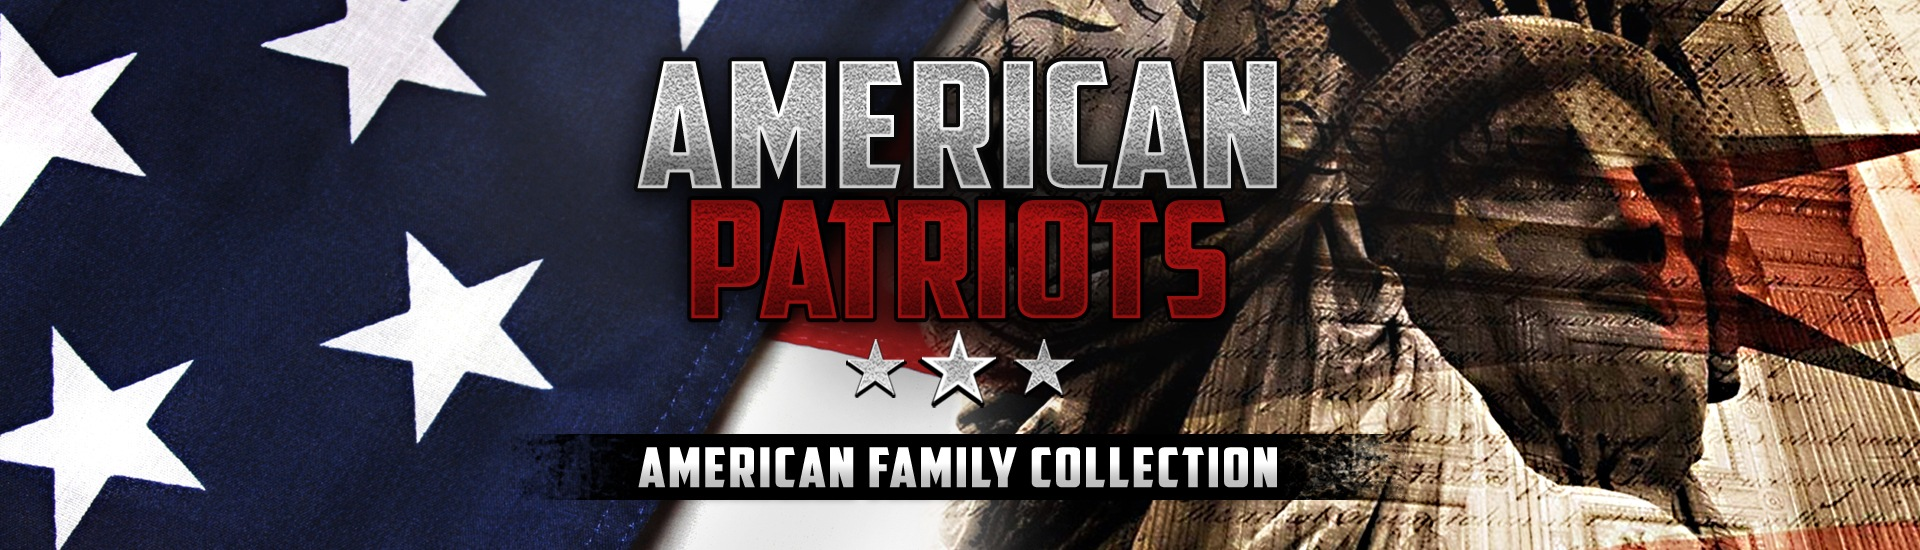 American Family Collection Store